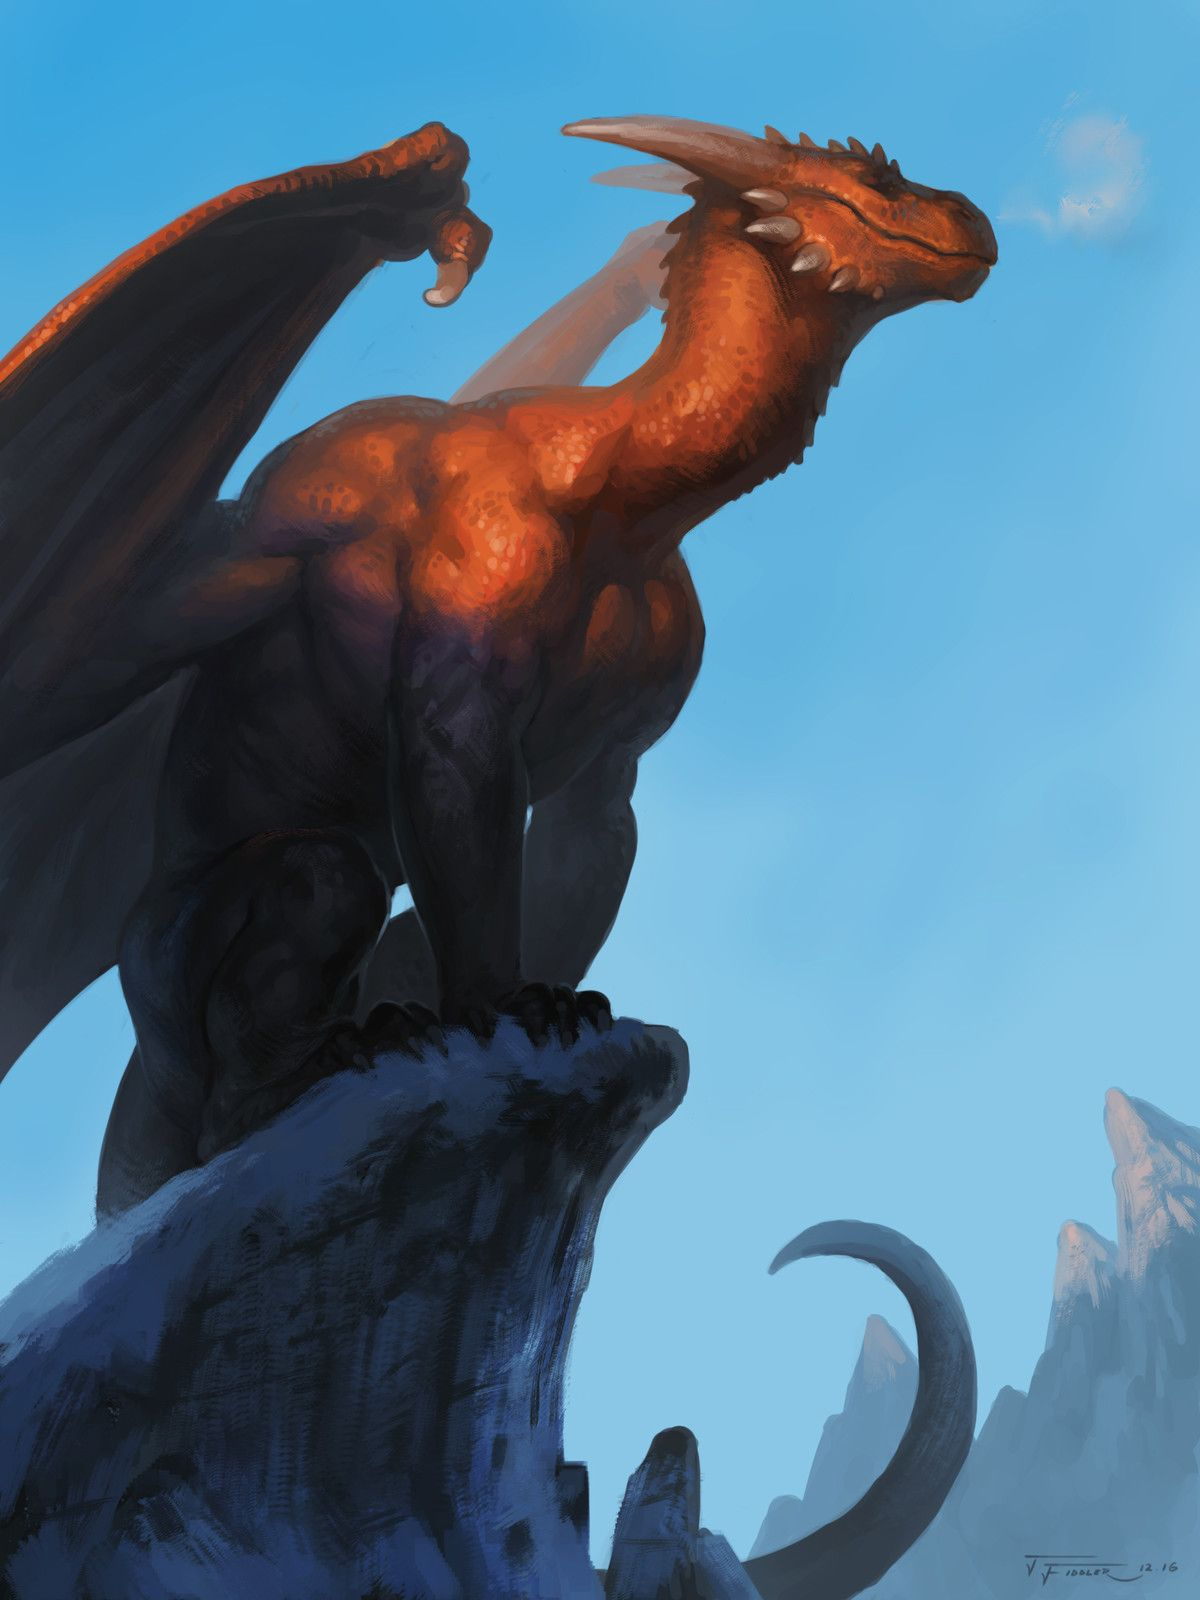 Dragon in the mountains, Taran Fiddler on ArtStation at https://www.artstation.com/artwork/6xOor